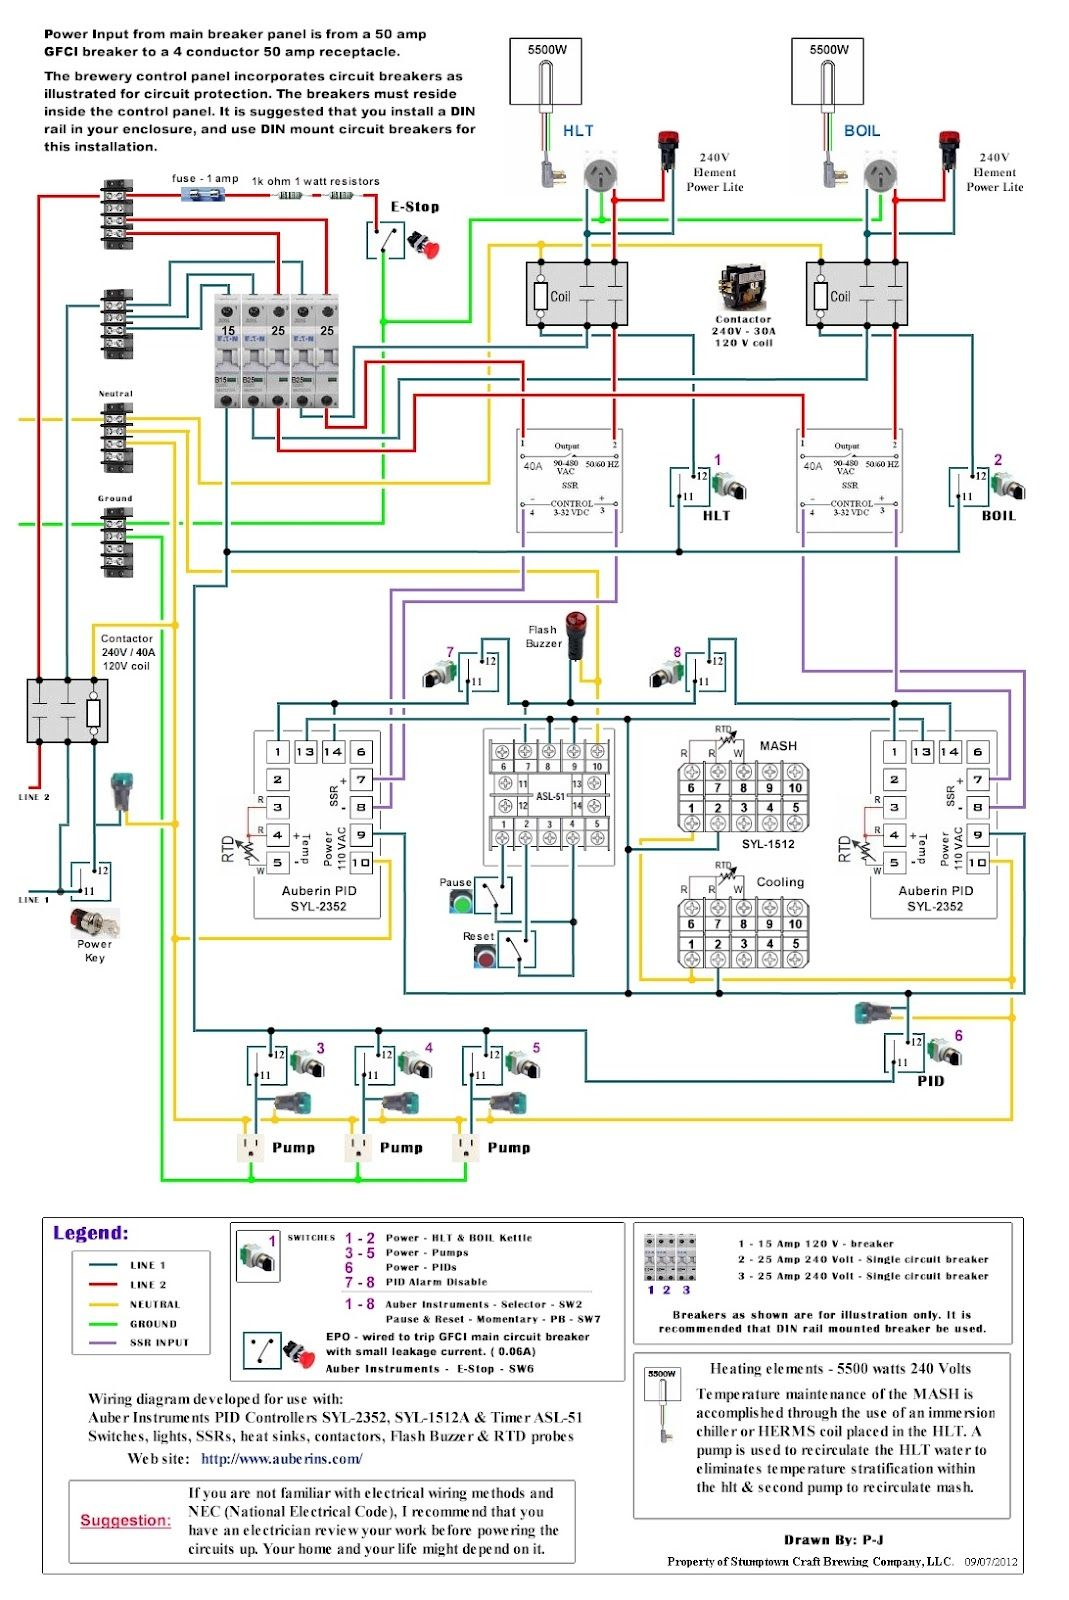 Pin By B Mott On Beer In 2018 Pinterest Brewing And Wine Pj Rims Wiring Diagram